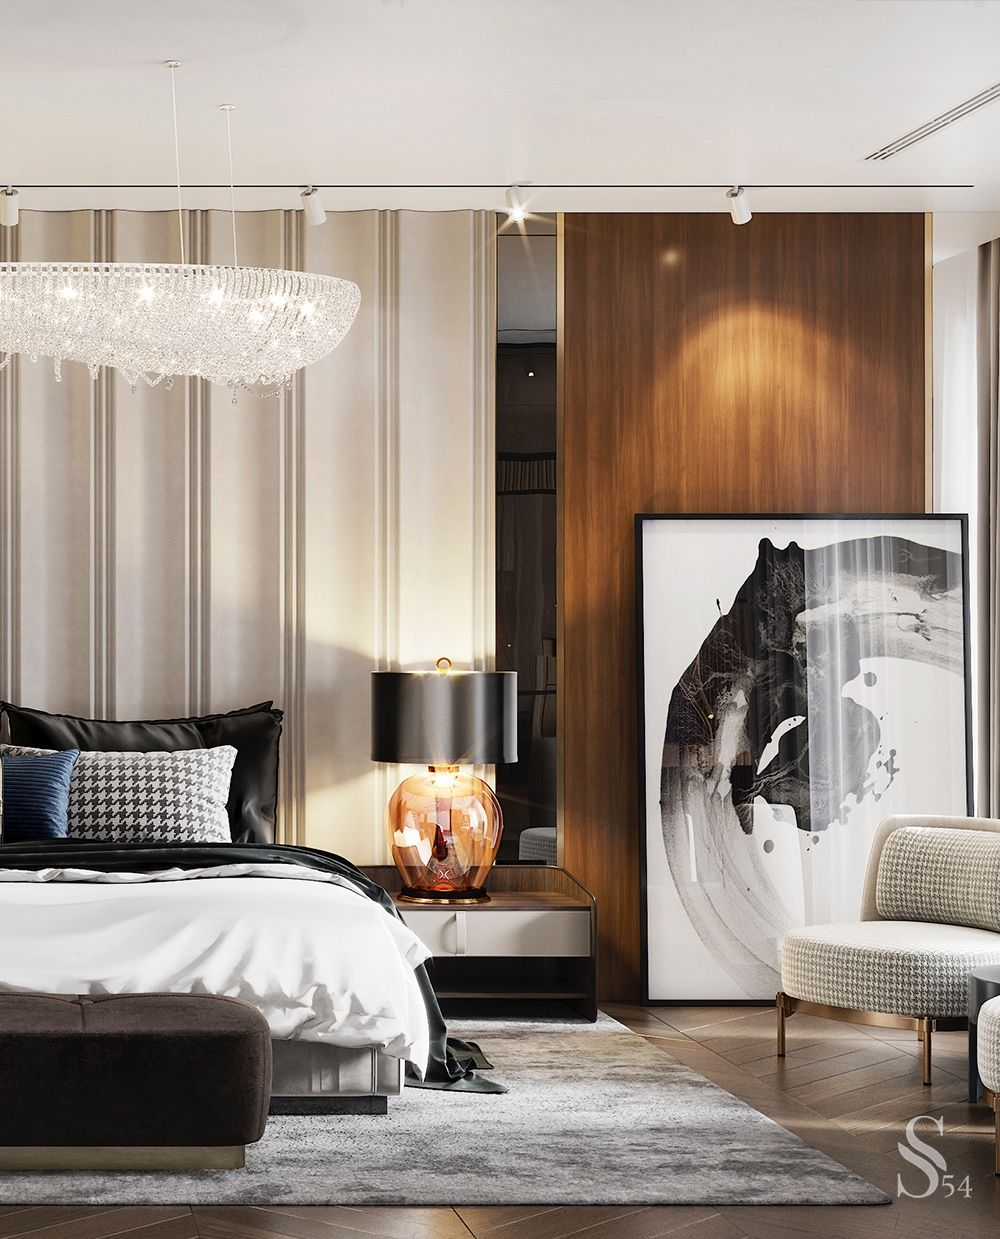 A luxurious master bedroom with an amazing chandelier and